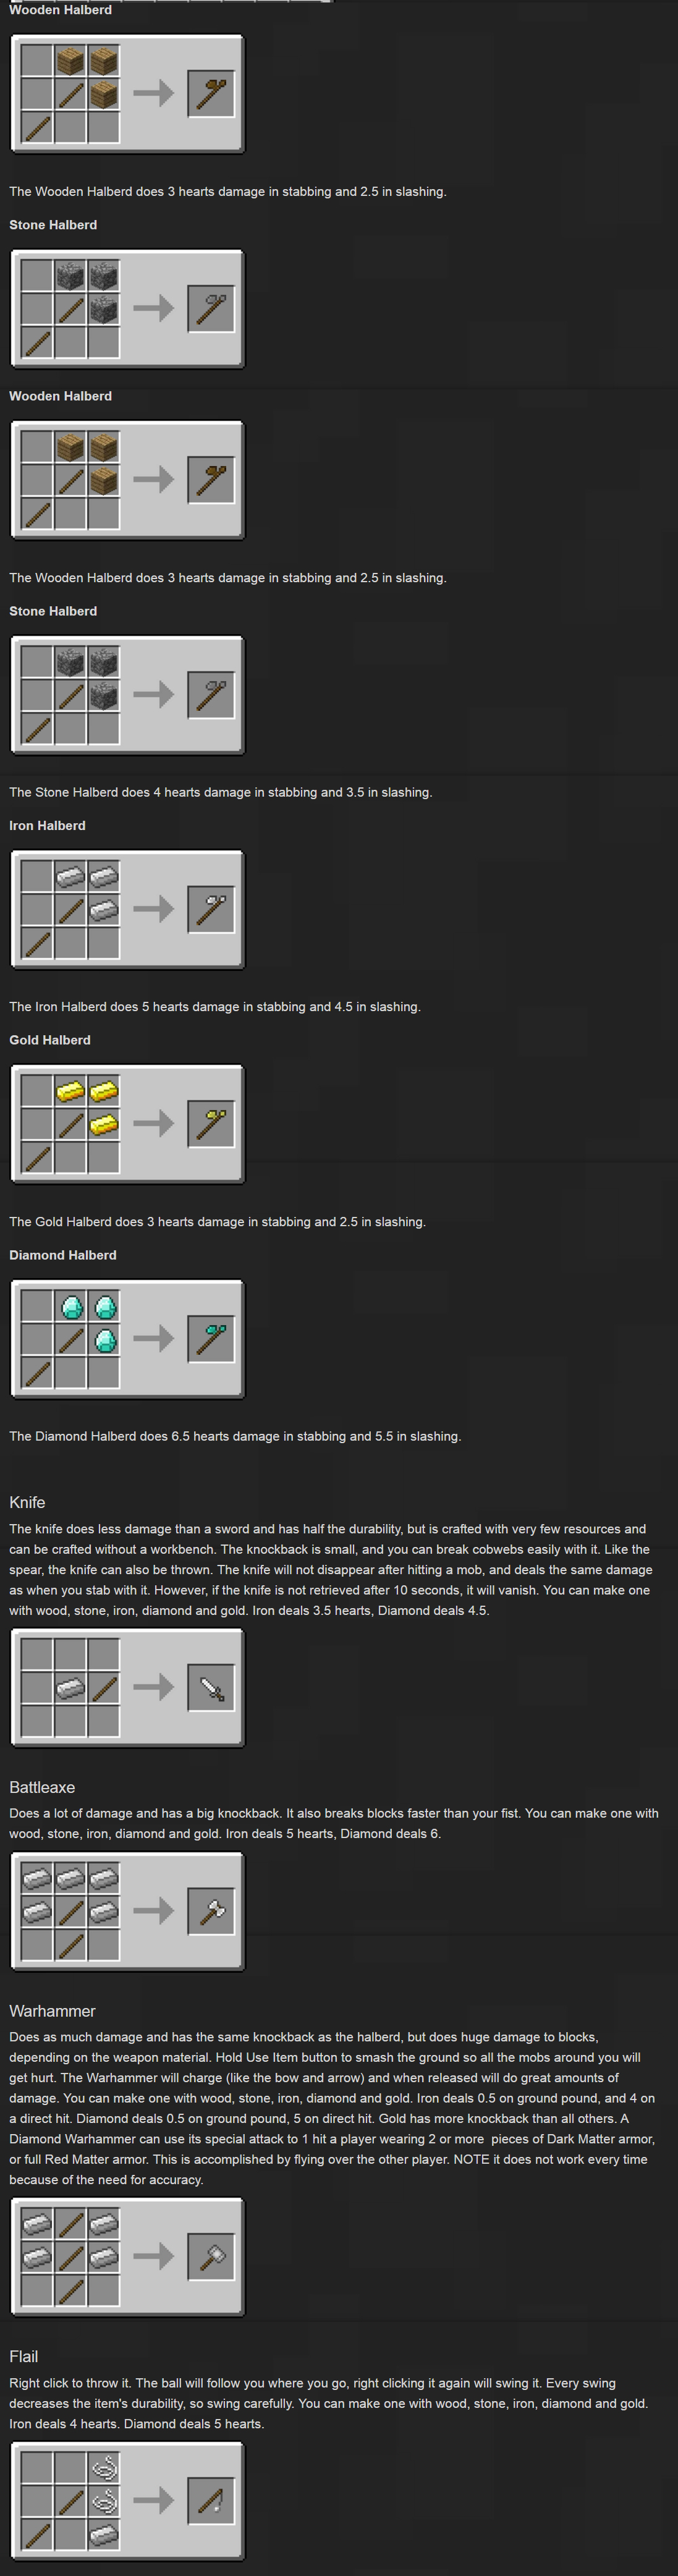 Balkon's Weapon Mod Crafting Recipes 1